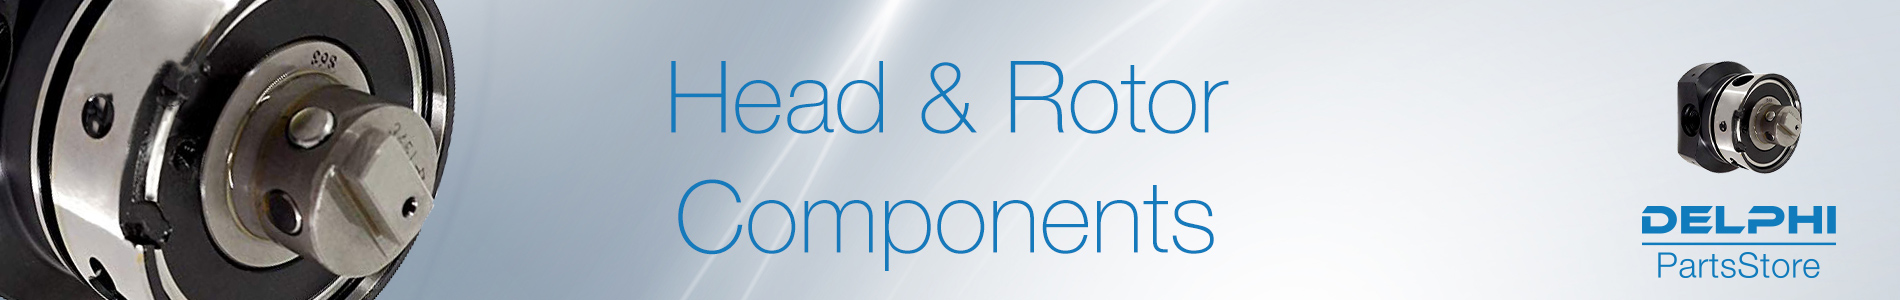 Head & Rotor Components